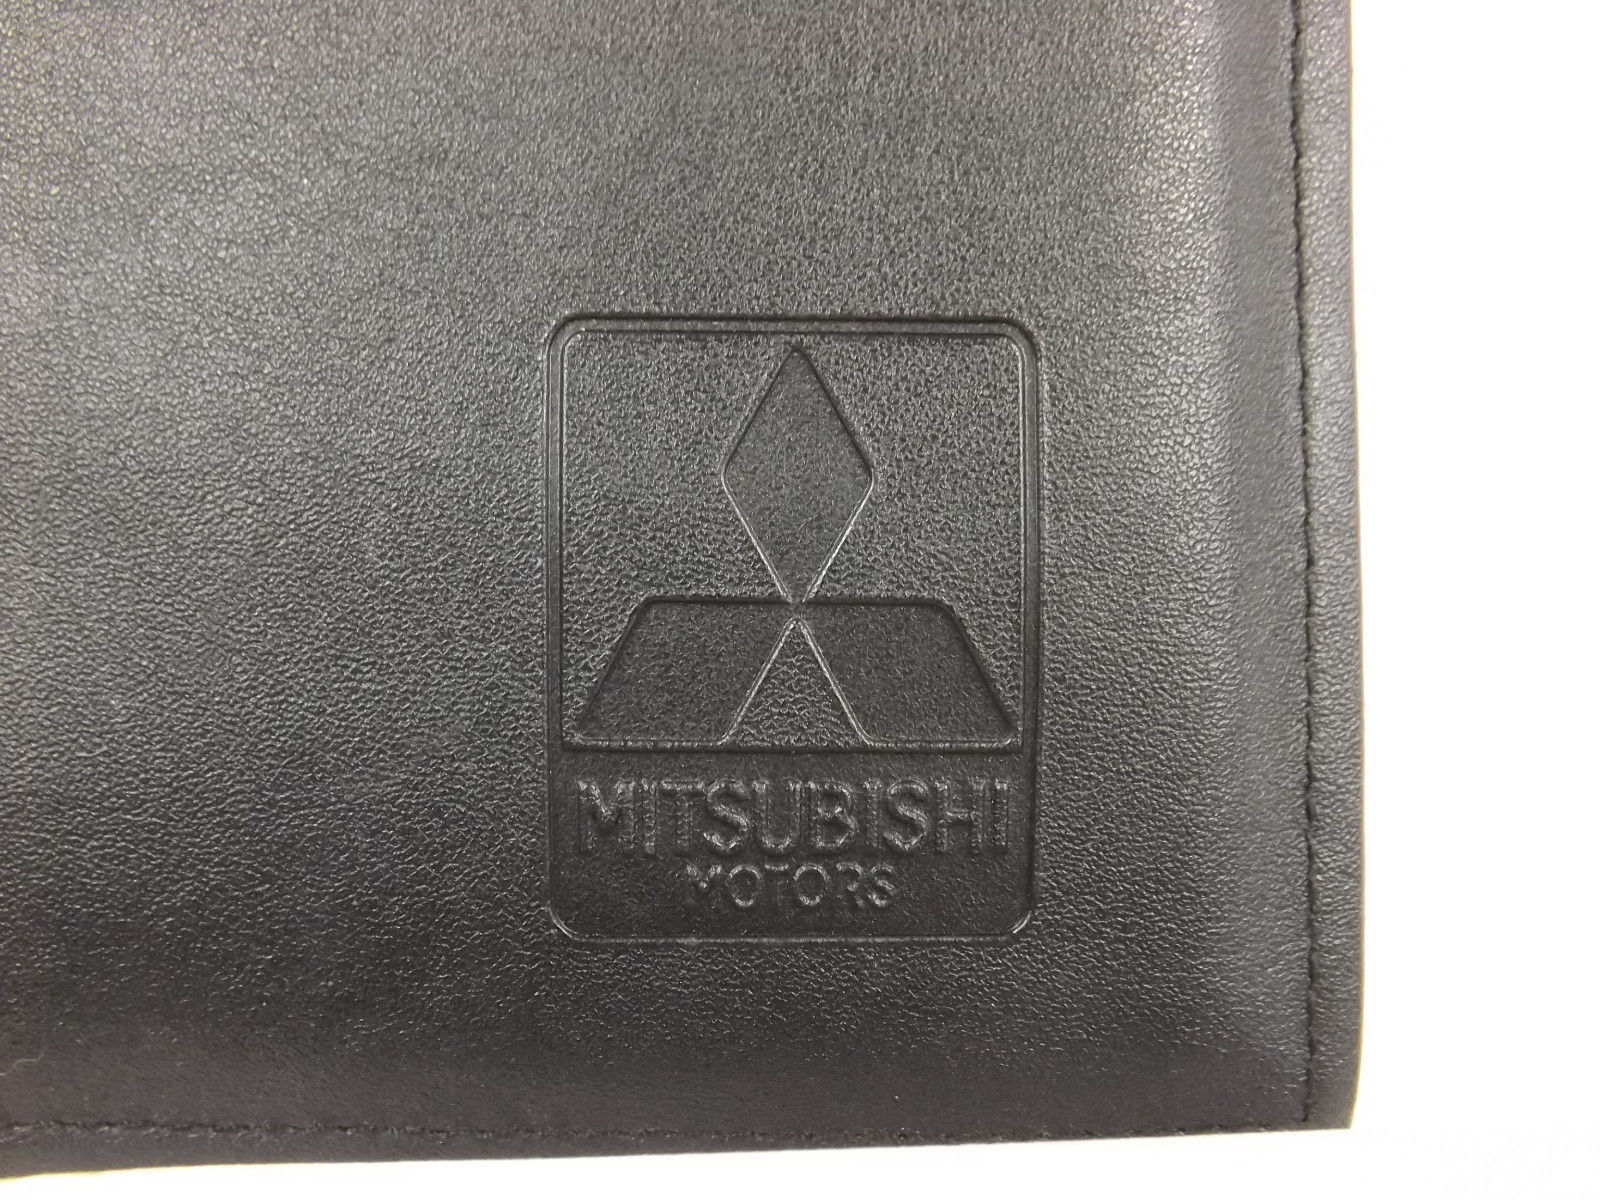 04 2004 Mitsubishi Endeavor Owners & Warranty Manual w/ Black Case